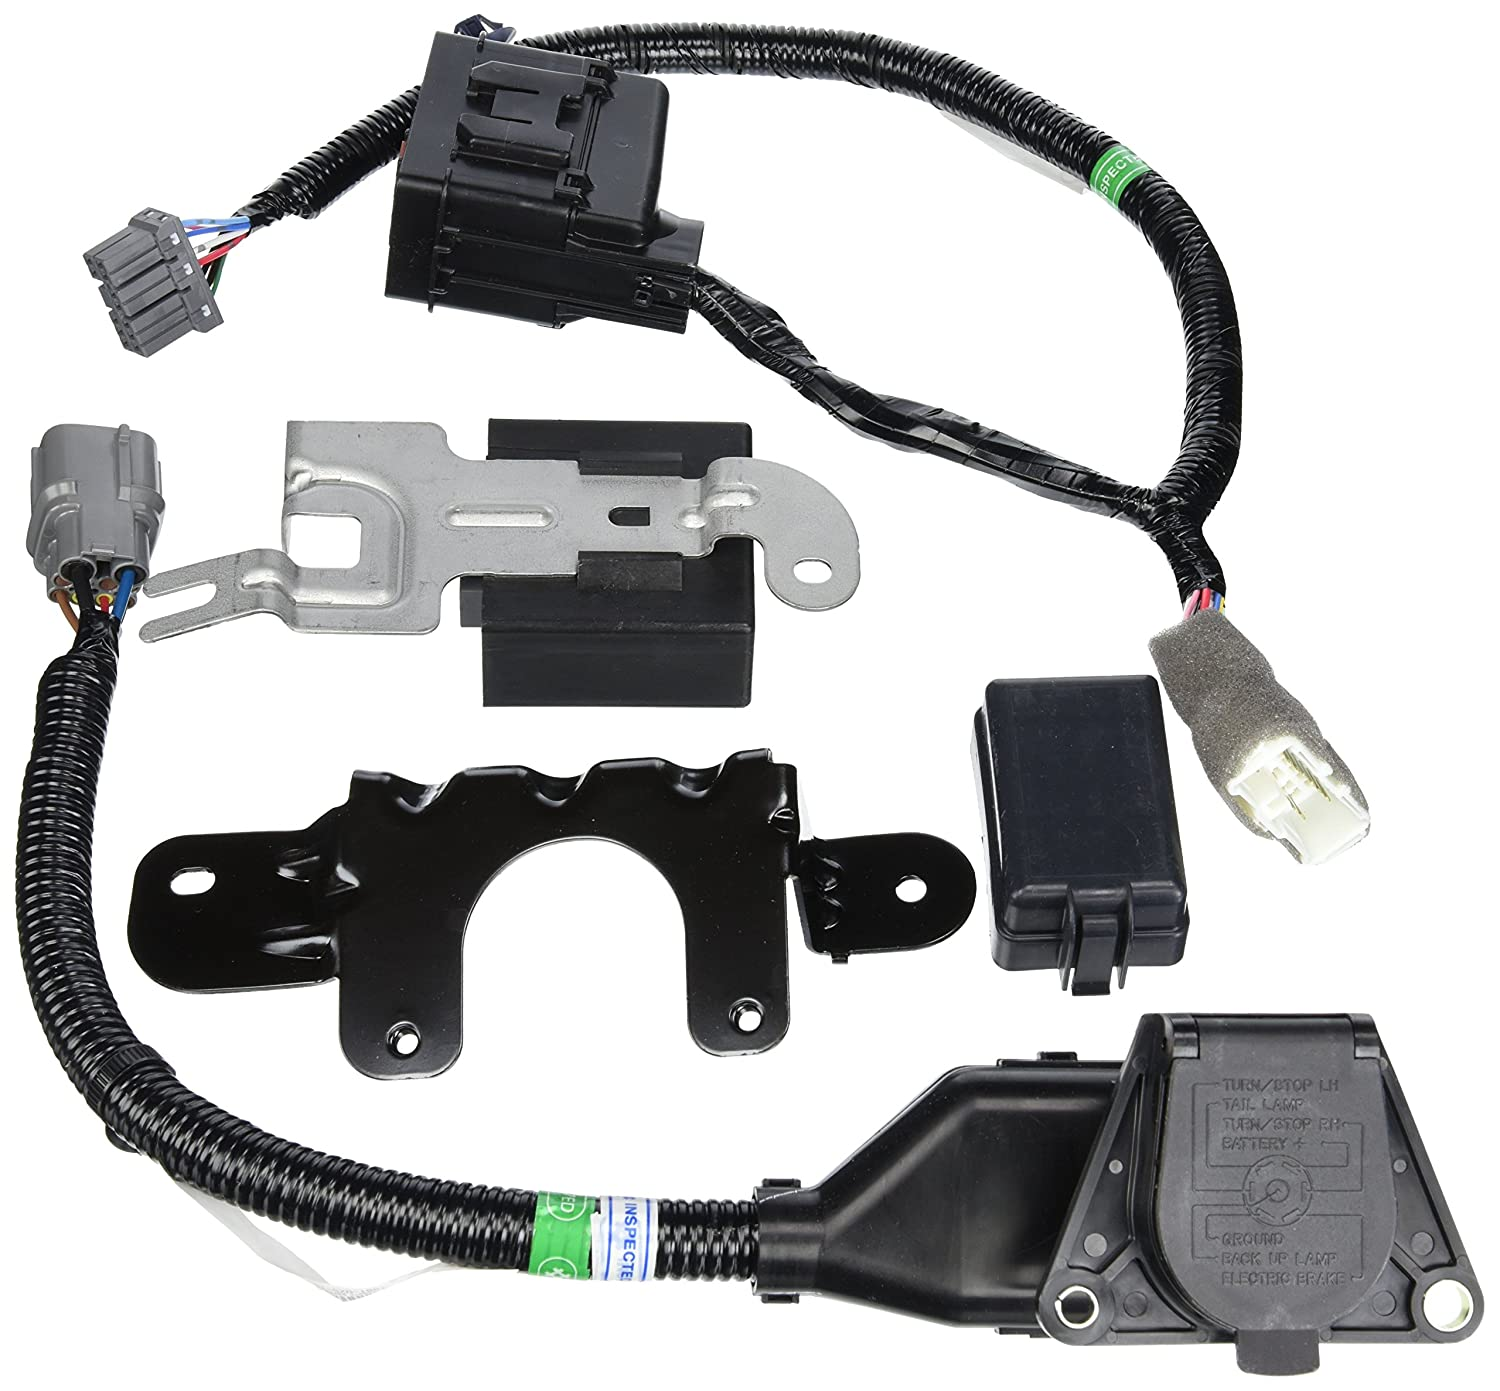 Amazon.com: Honda Genuine 08L91-SZA-100A Trailer Hitch Harness: Automotive